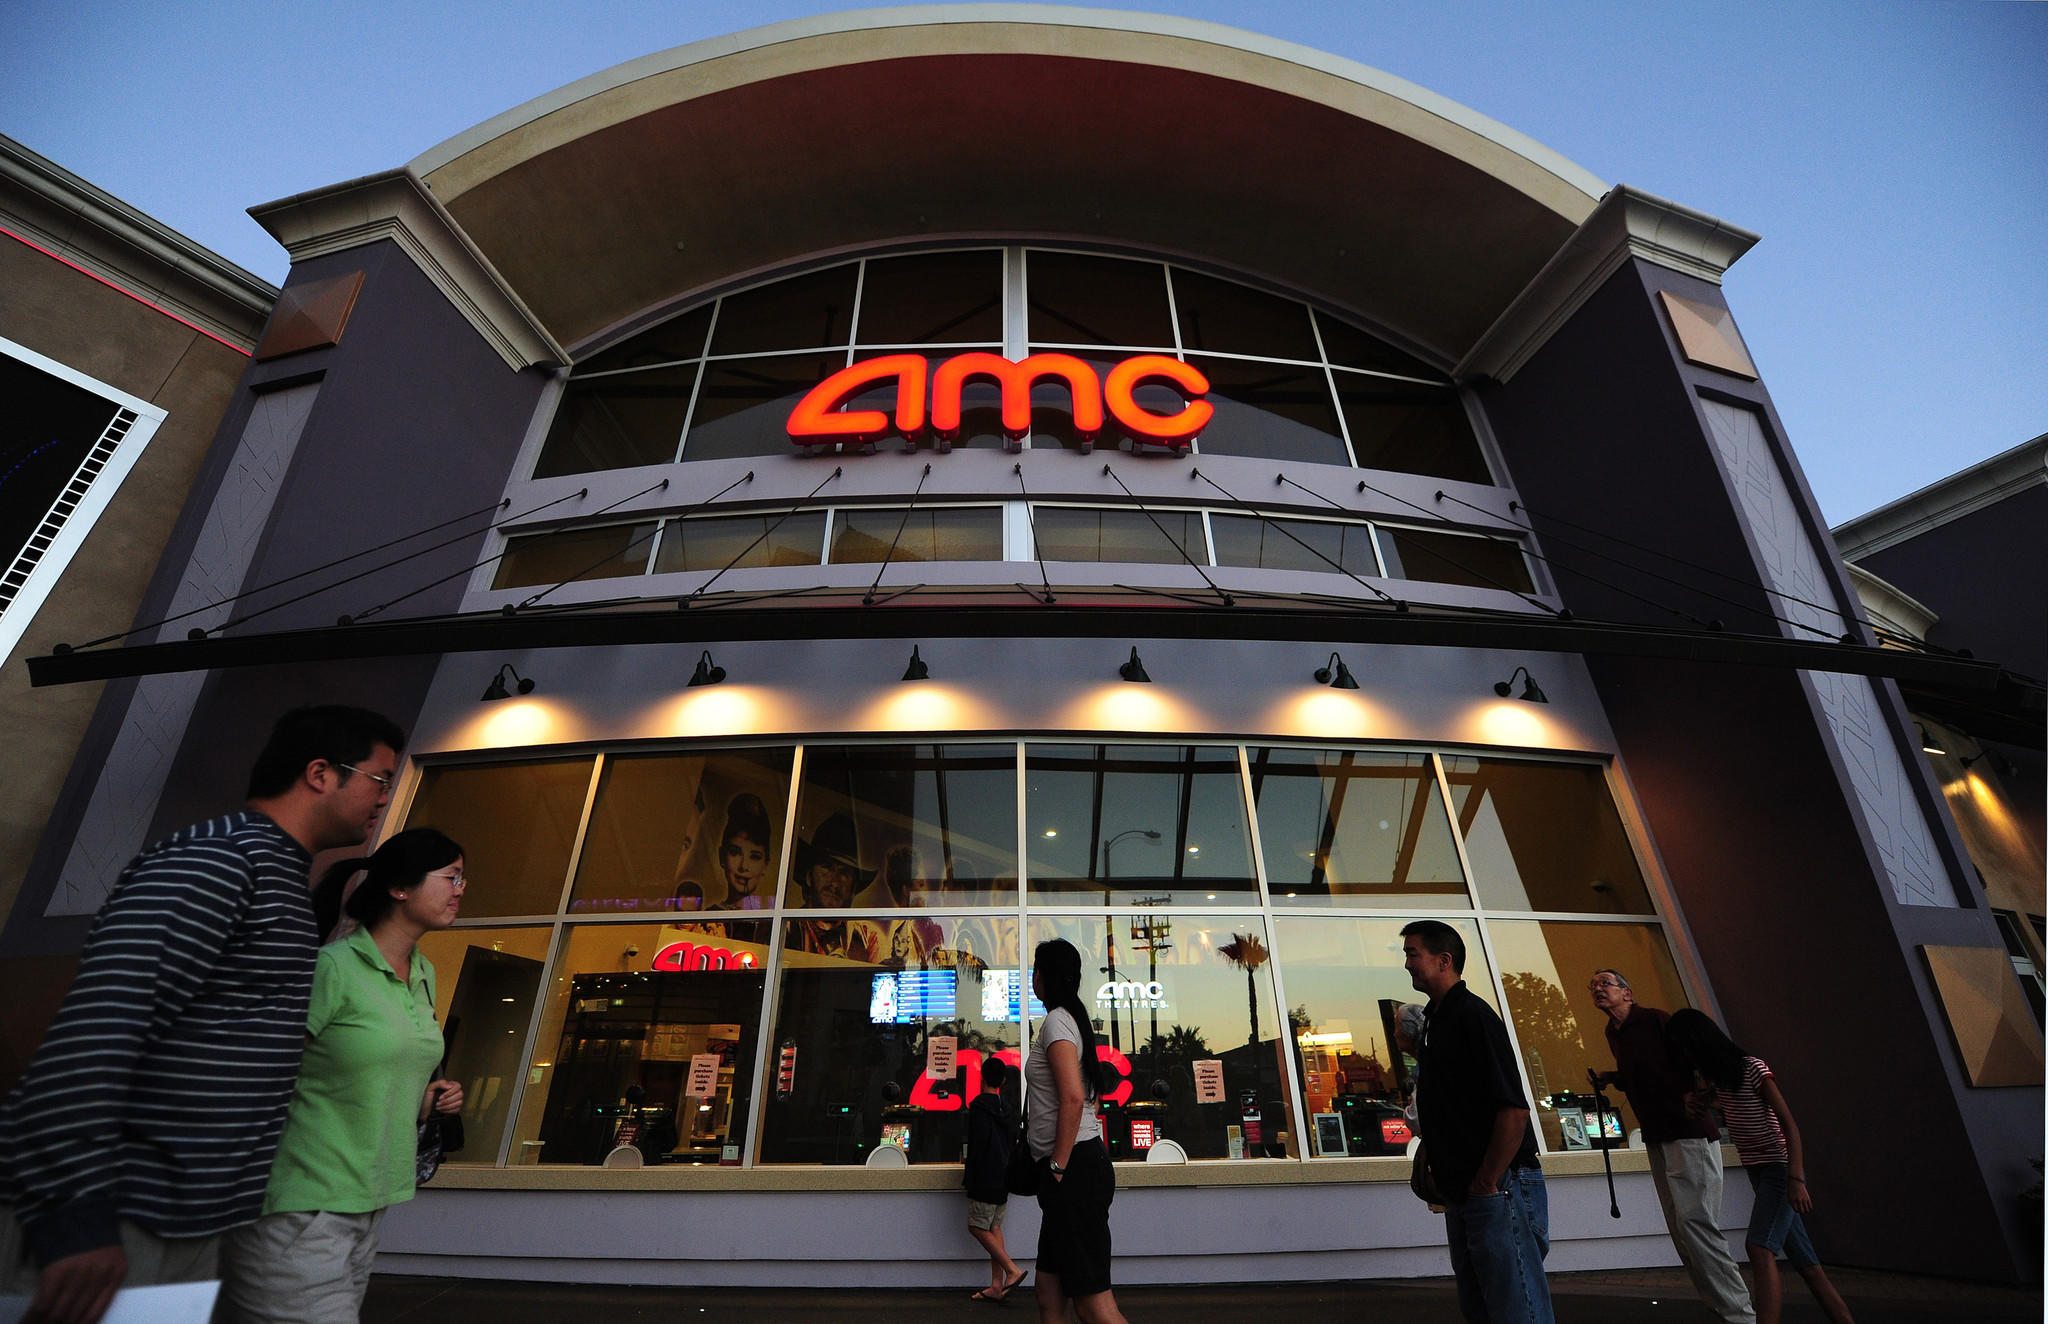 There's a lot of interest these days in whether millennials will be as interested in going to movie theaters as baby boomers have been, says Adam Aron, CEO of AMC Entertainment. (Frederic J. Brown / AFP/Getty Images)